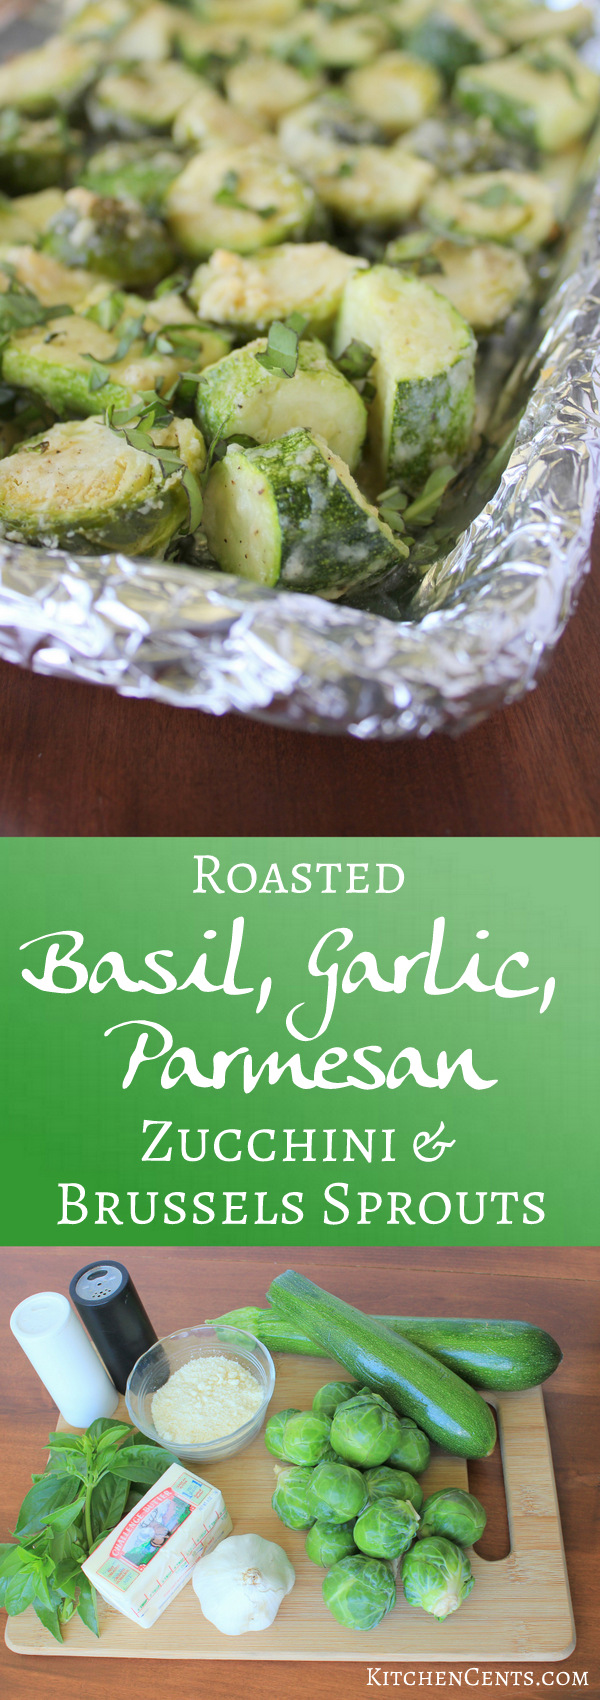 garlic-parmesan-brussel-sprouts-and-zucchini | KitchenCents.com